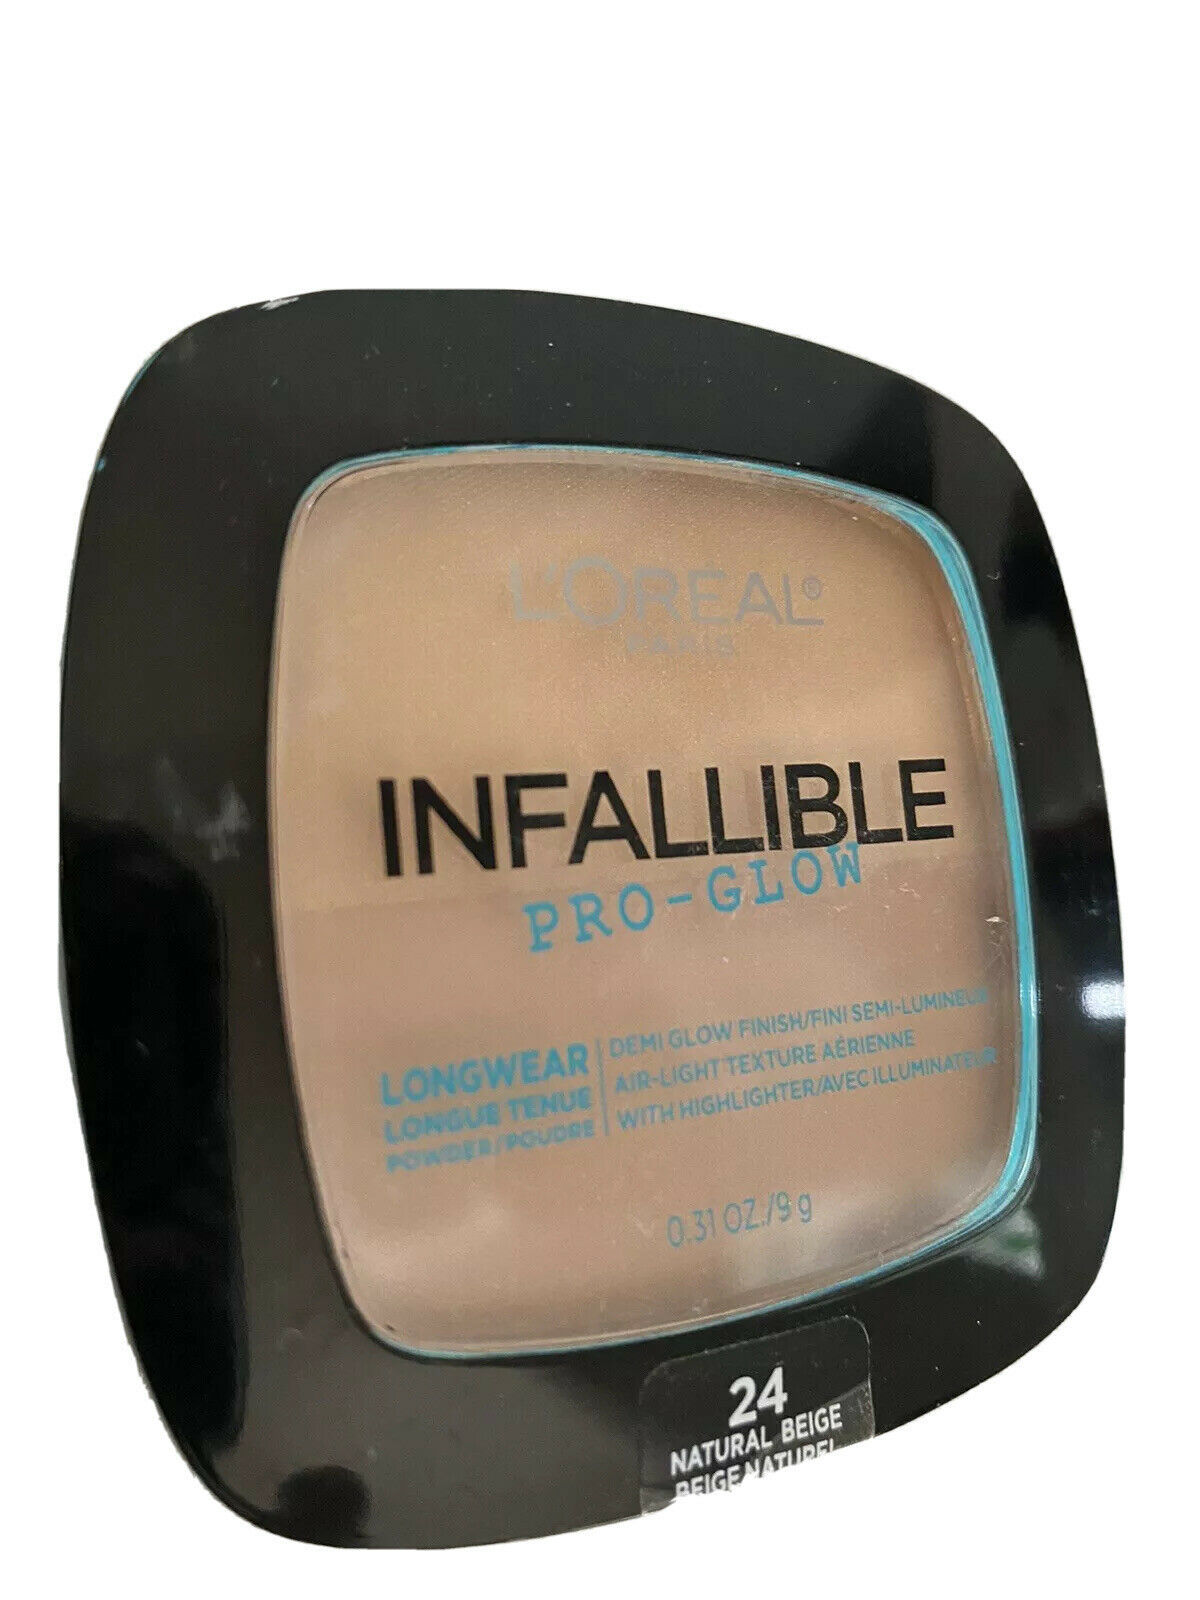 L'Oreal Cosmetics Infallible Pro Glow Longwear Pressed Powder 24 Natural Beige  - $12.86